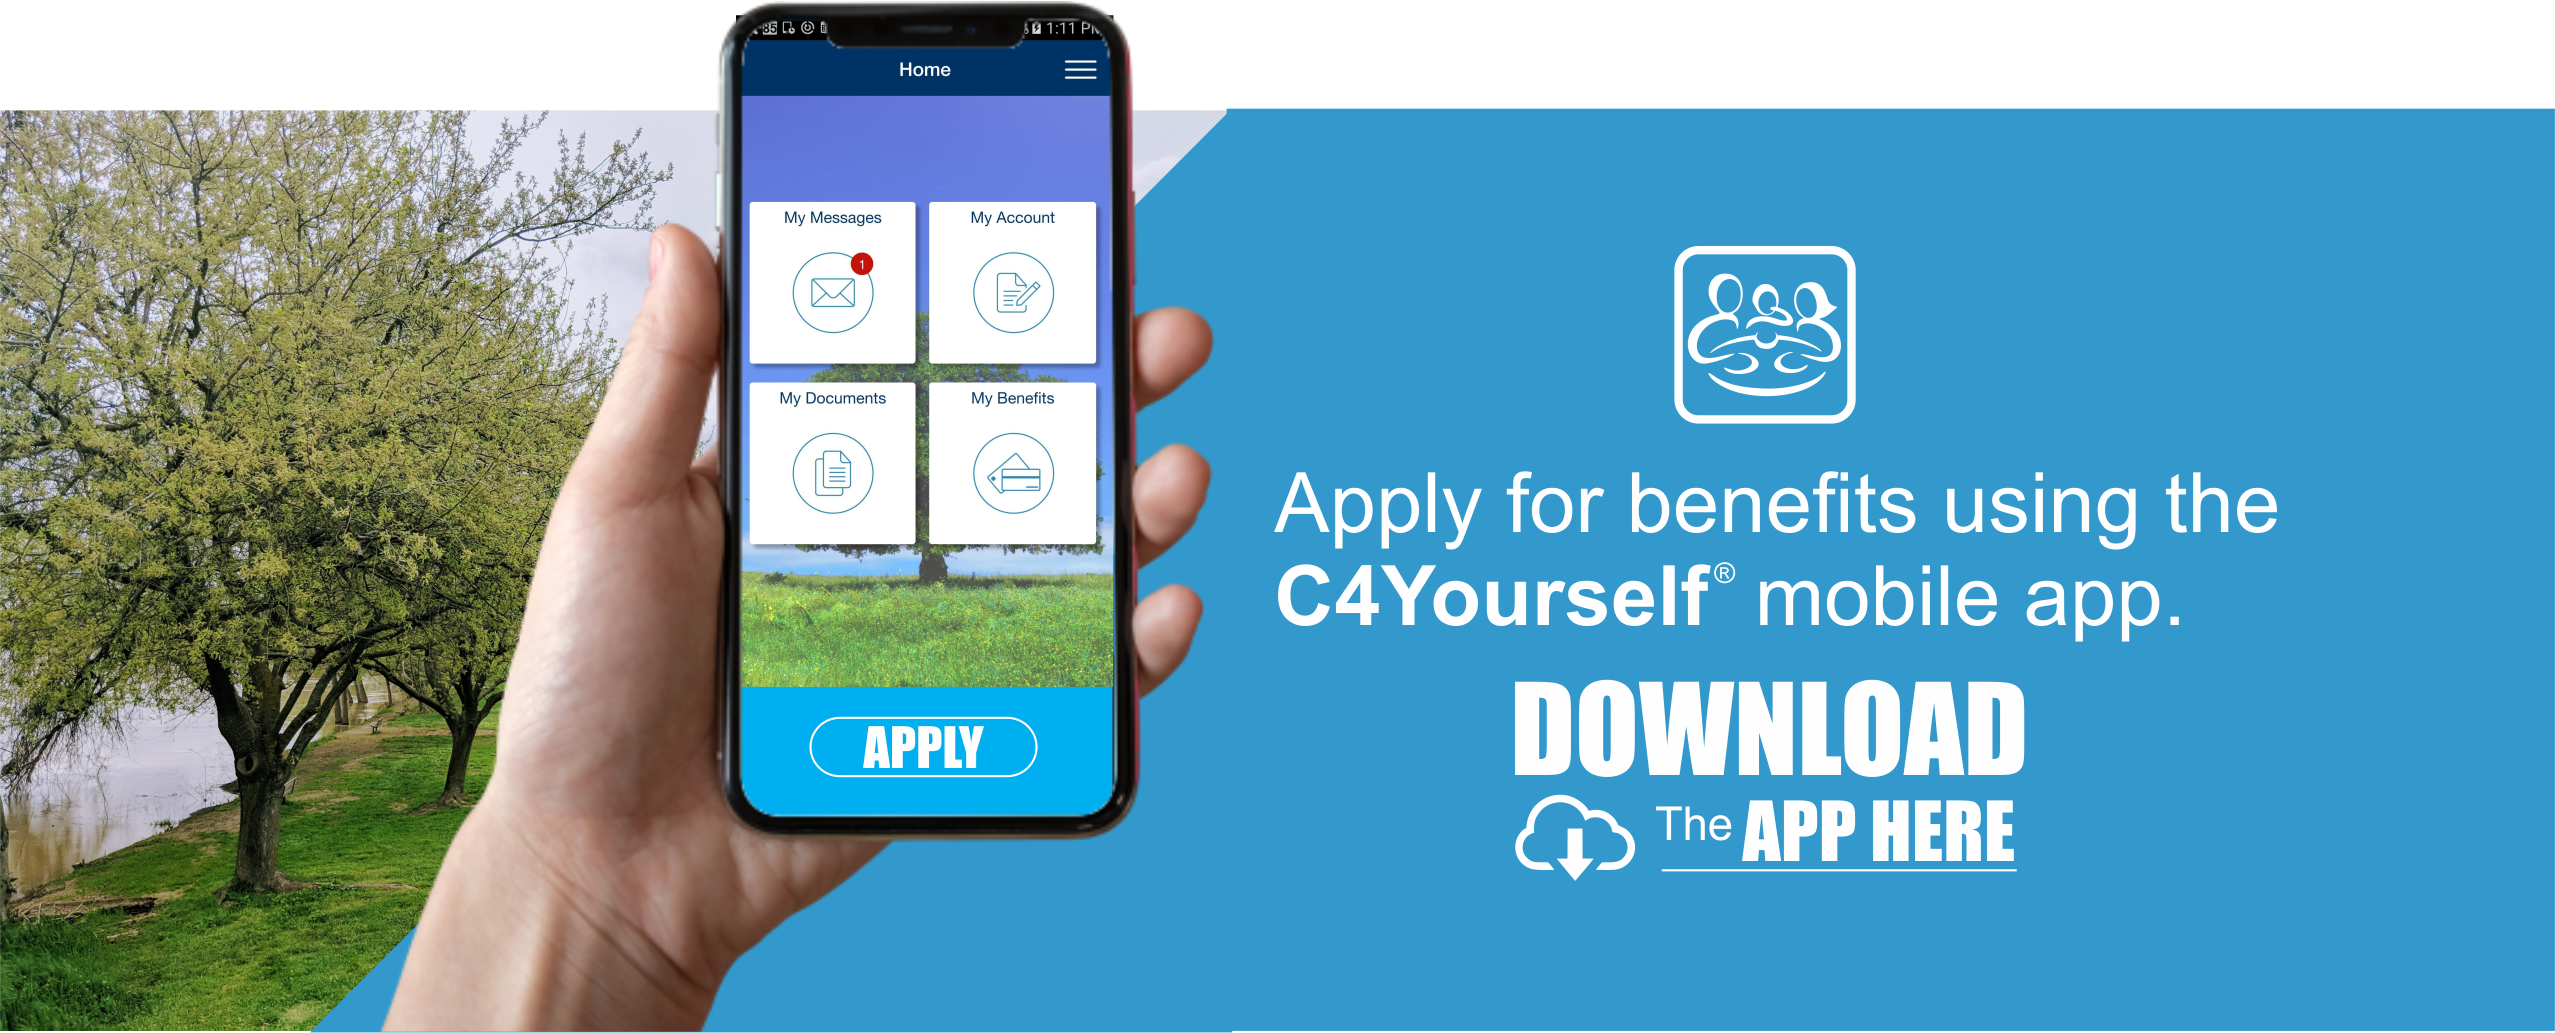 c4y app banner Opens in new window